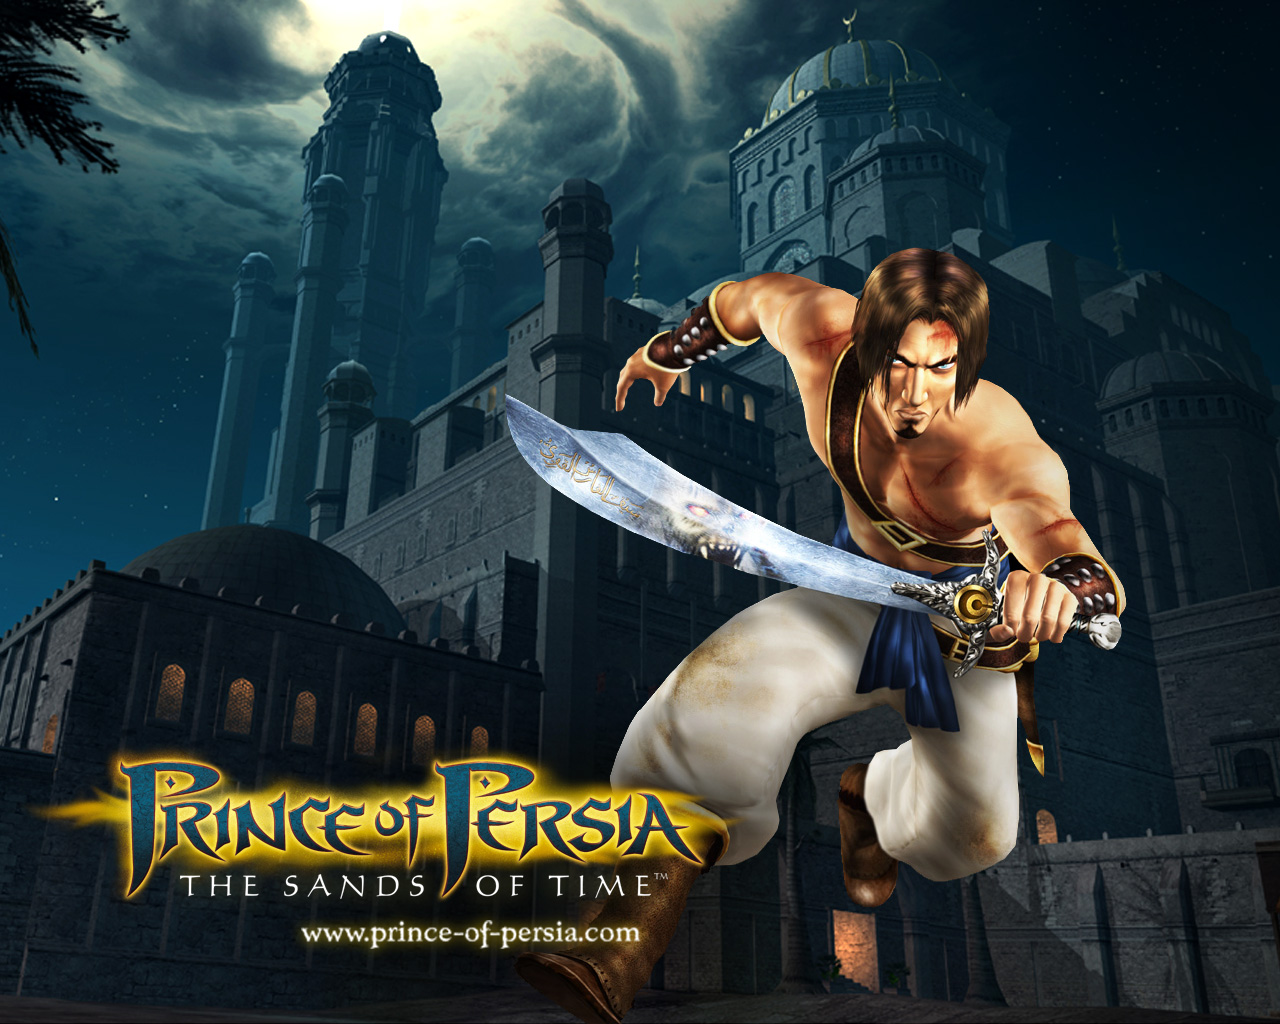 Palace_Tower_1280.jpg - Prince of Persia: The Two Thrones